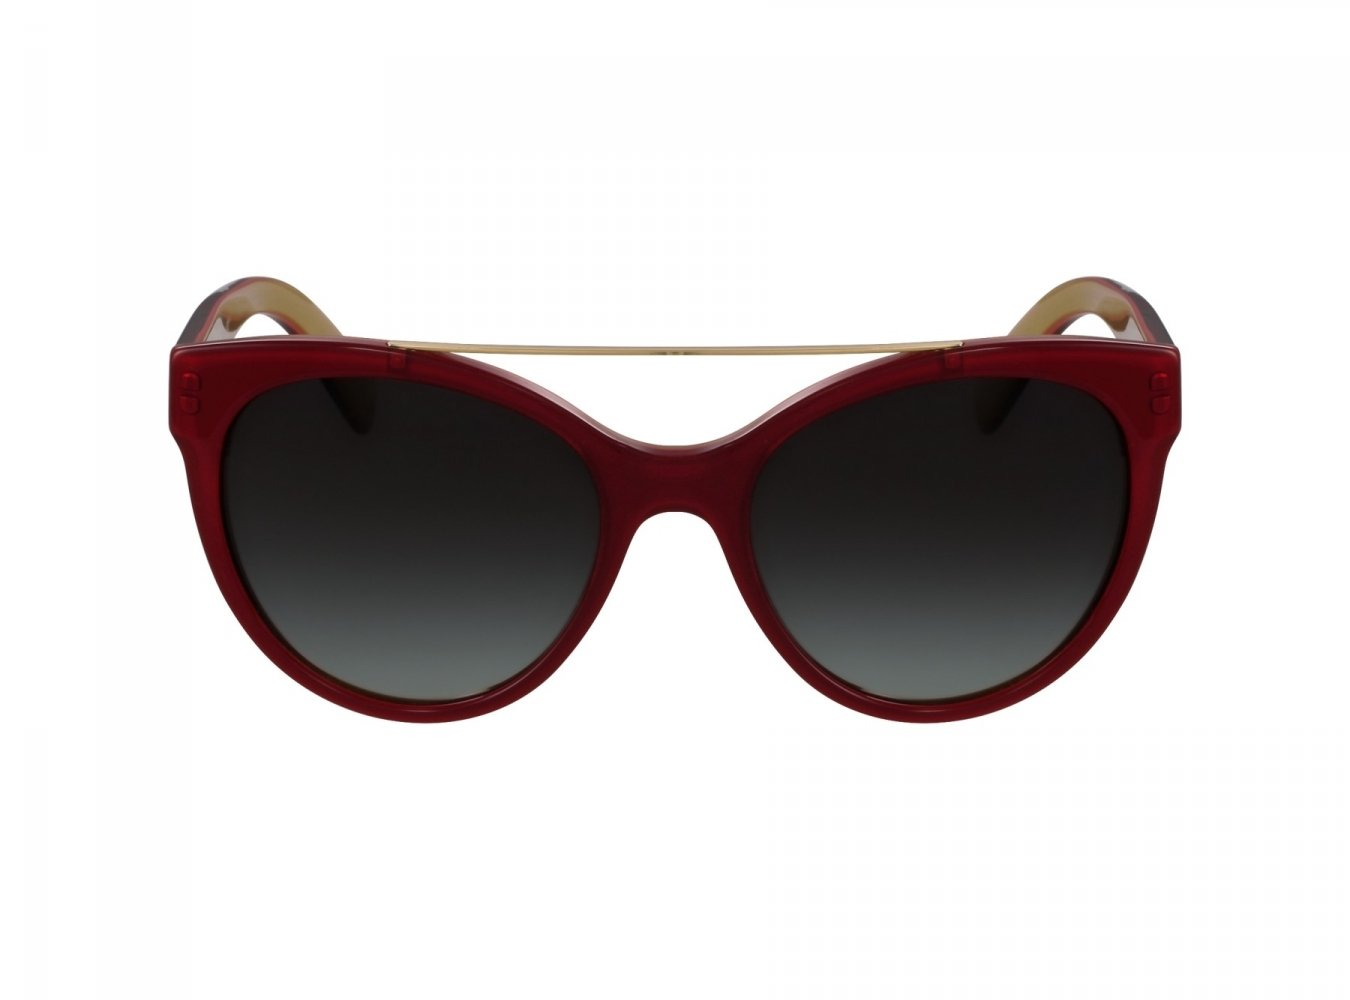 Dolce & Gabbana Women's 0dg4280 Round Sunglasses, Top Red on Gold, 57 mm